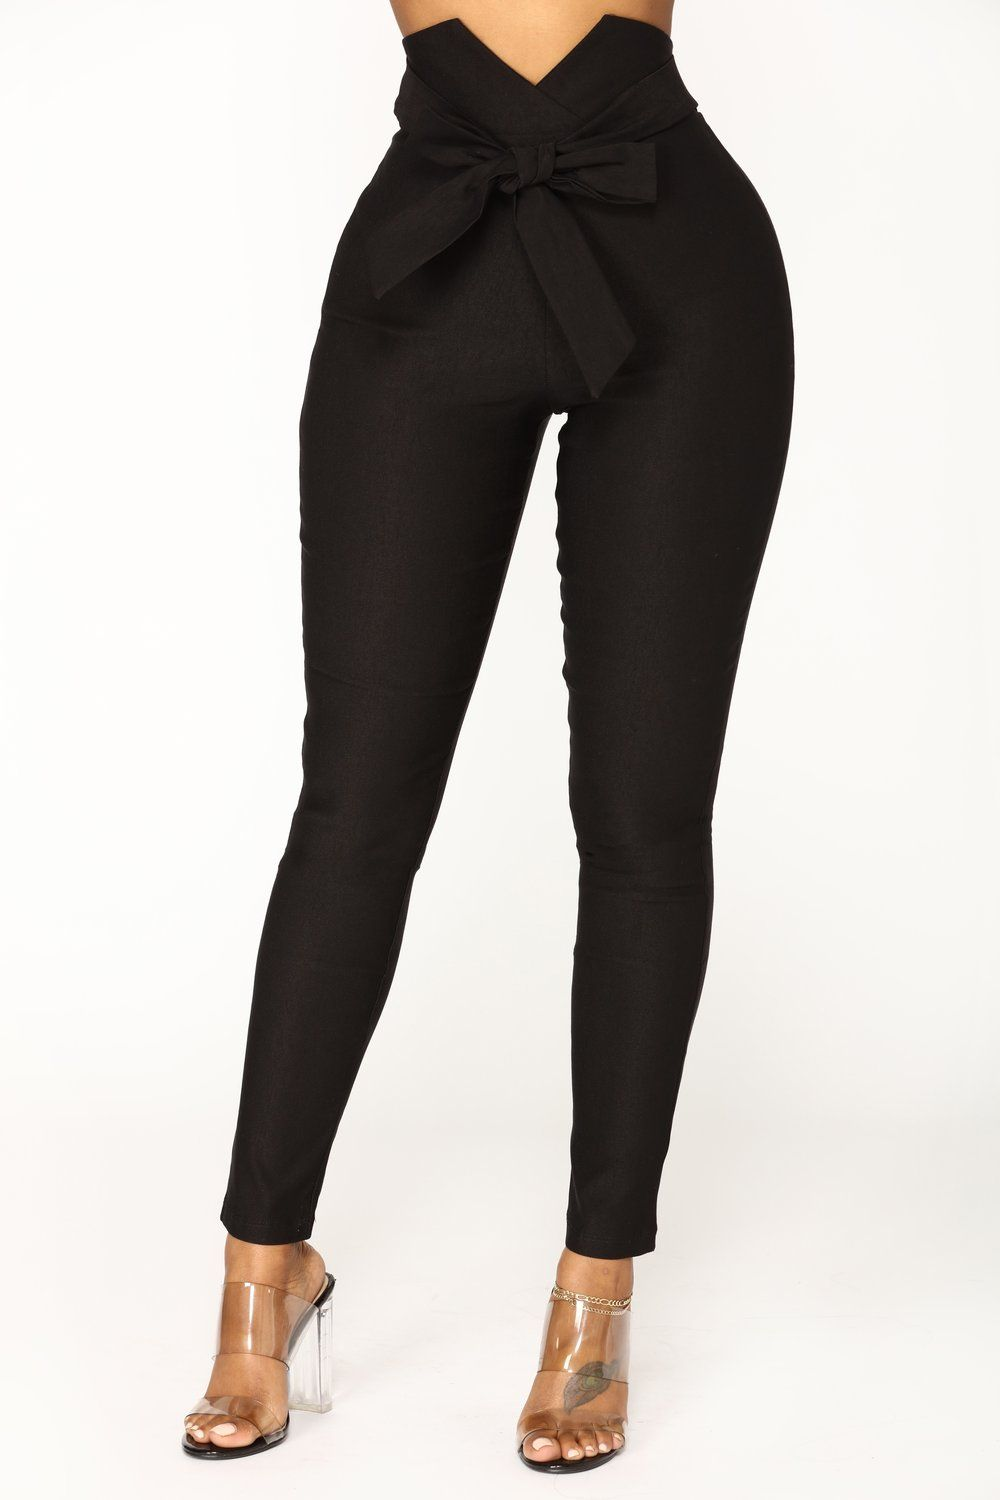 febf1d470548 Knot Your Girl Pants - Black in 2019